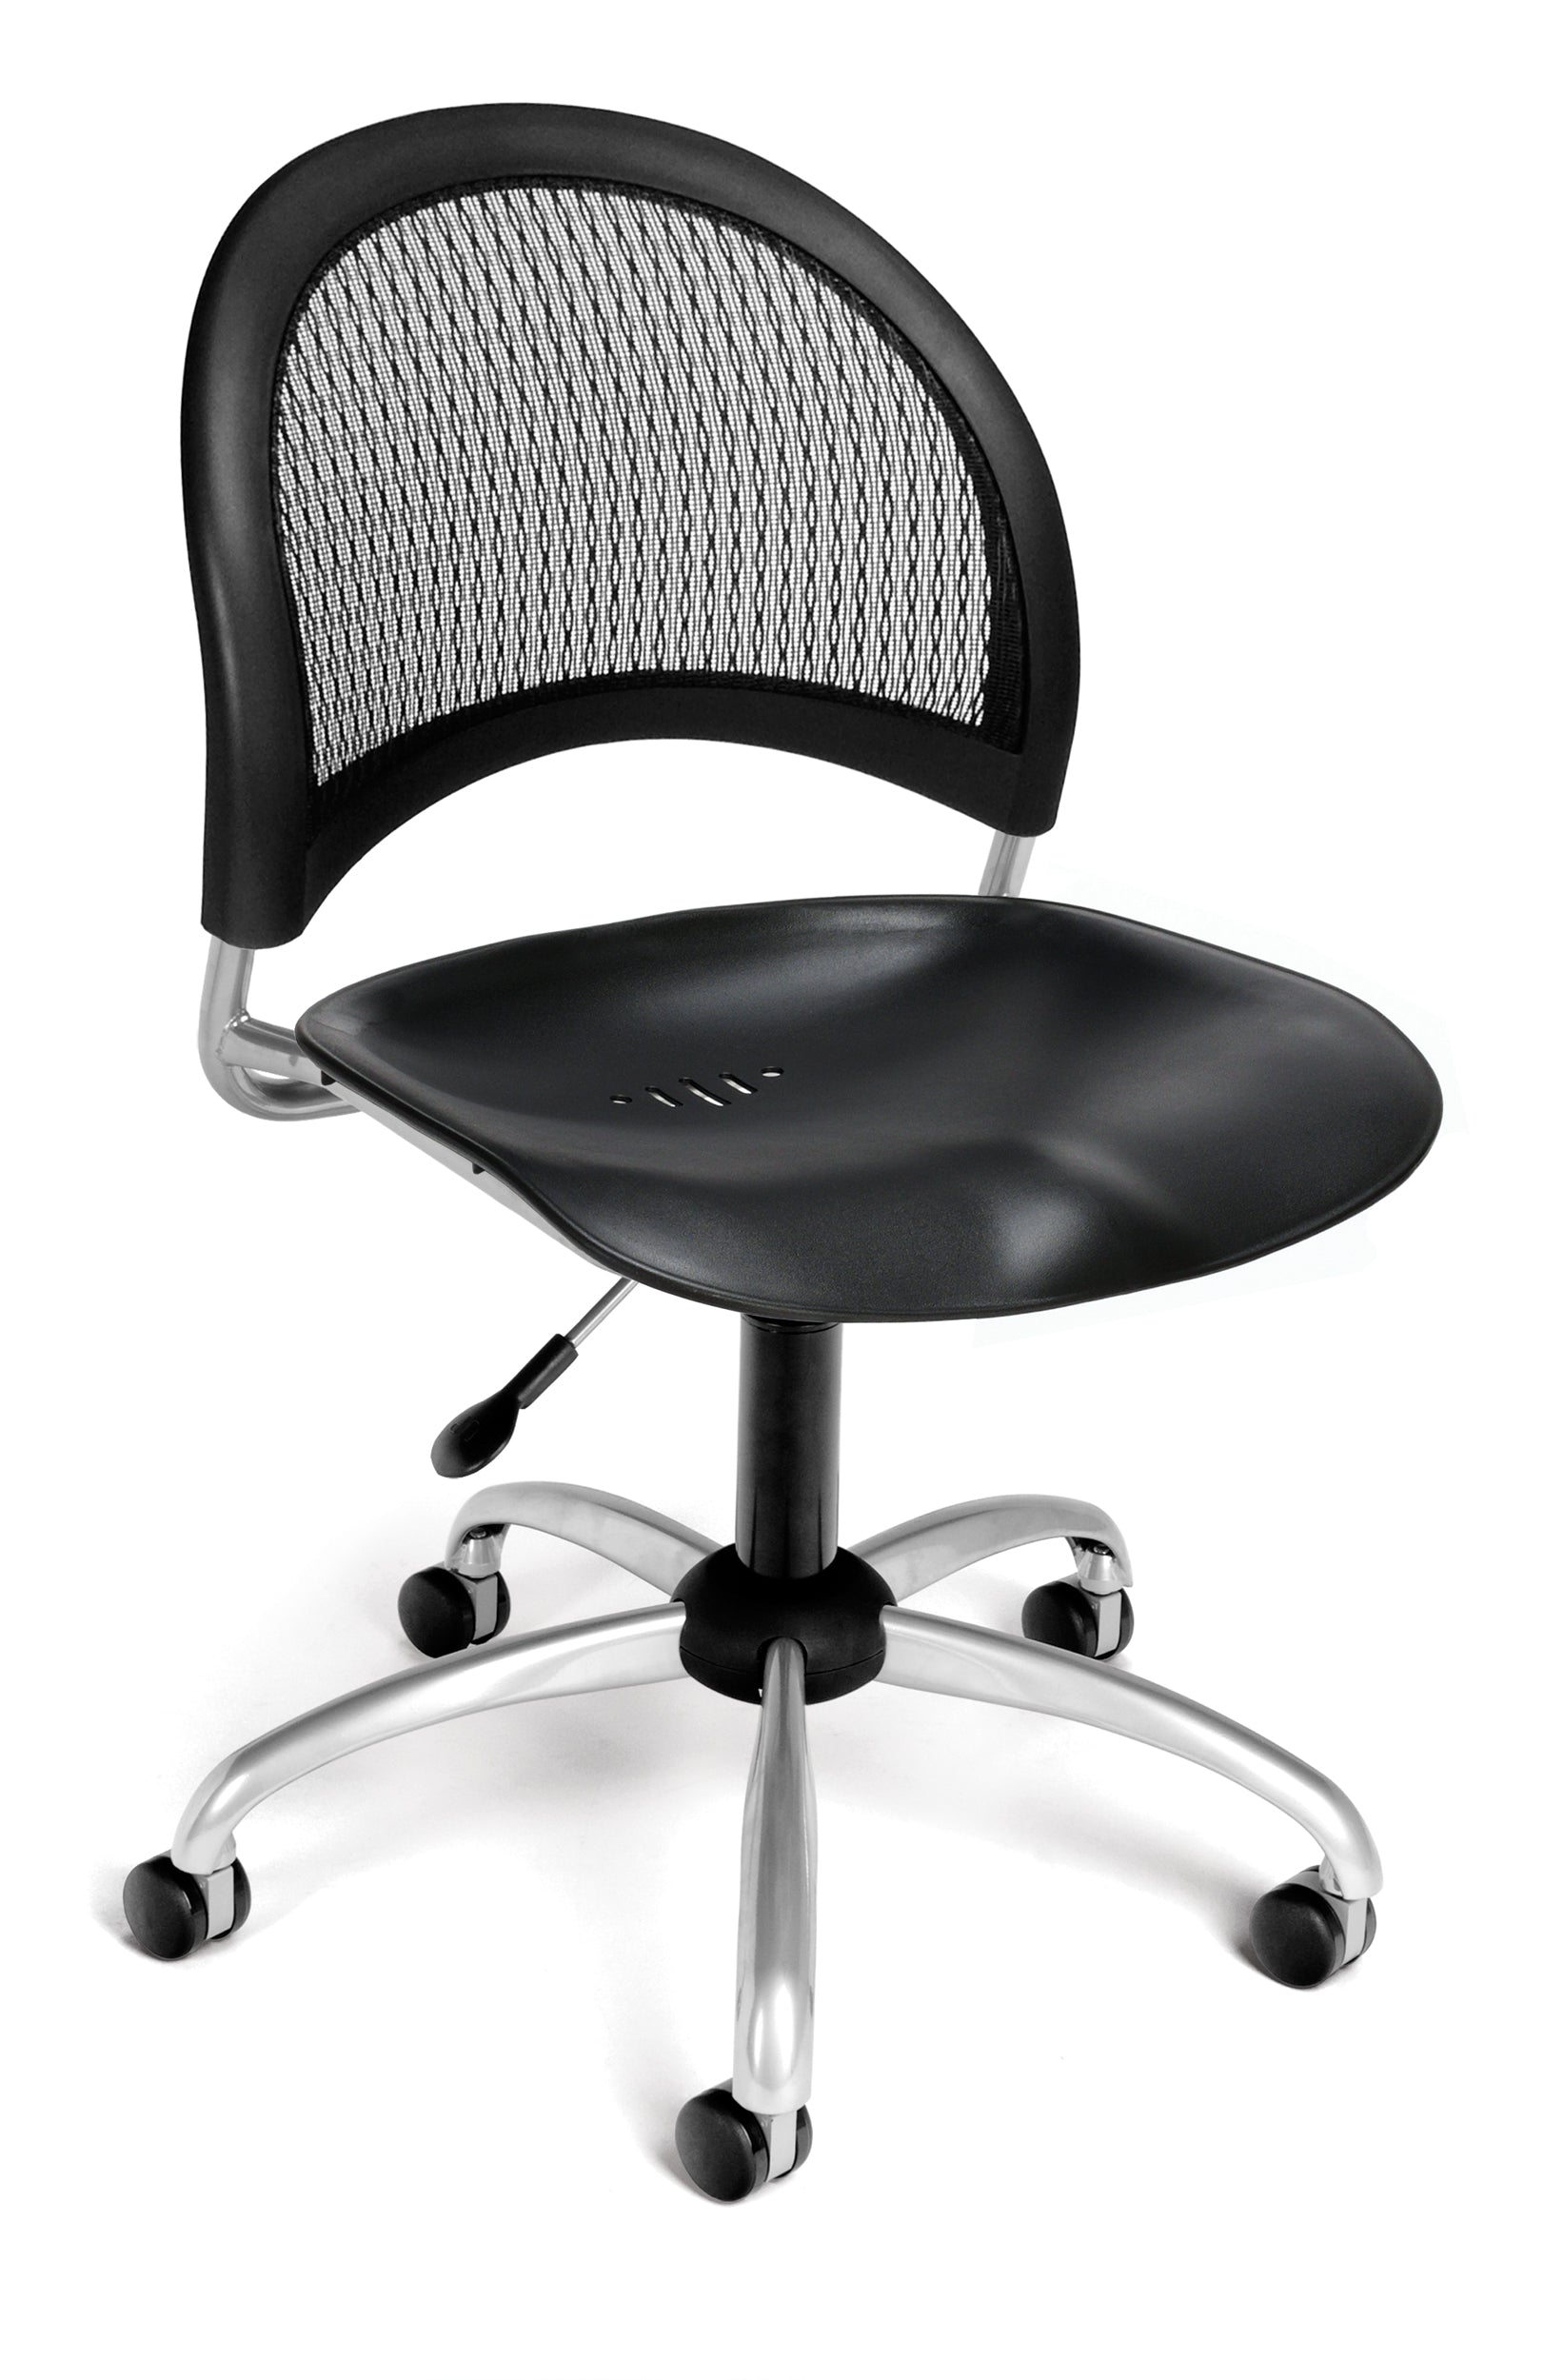 Ofminc Model 336-P Moon Series Armless Plastic Swivel Chair